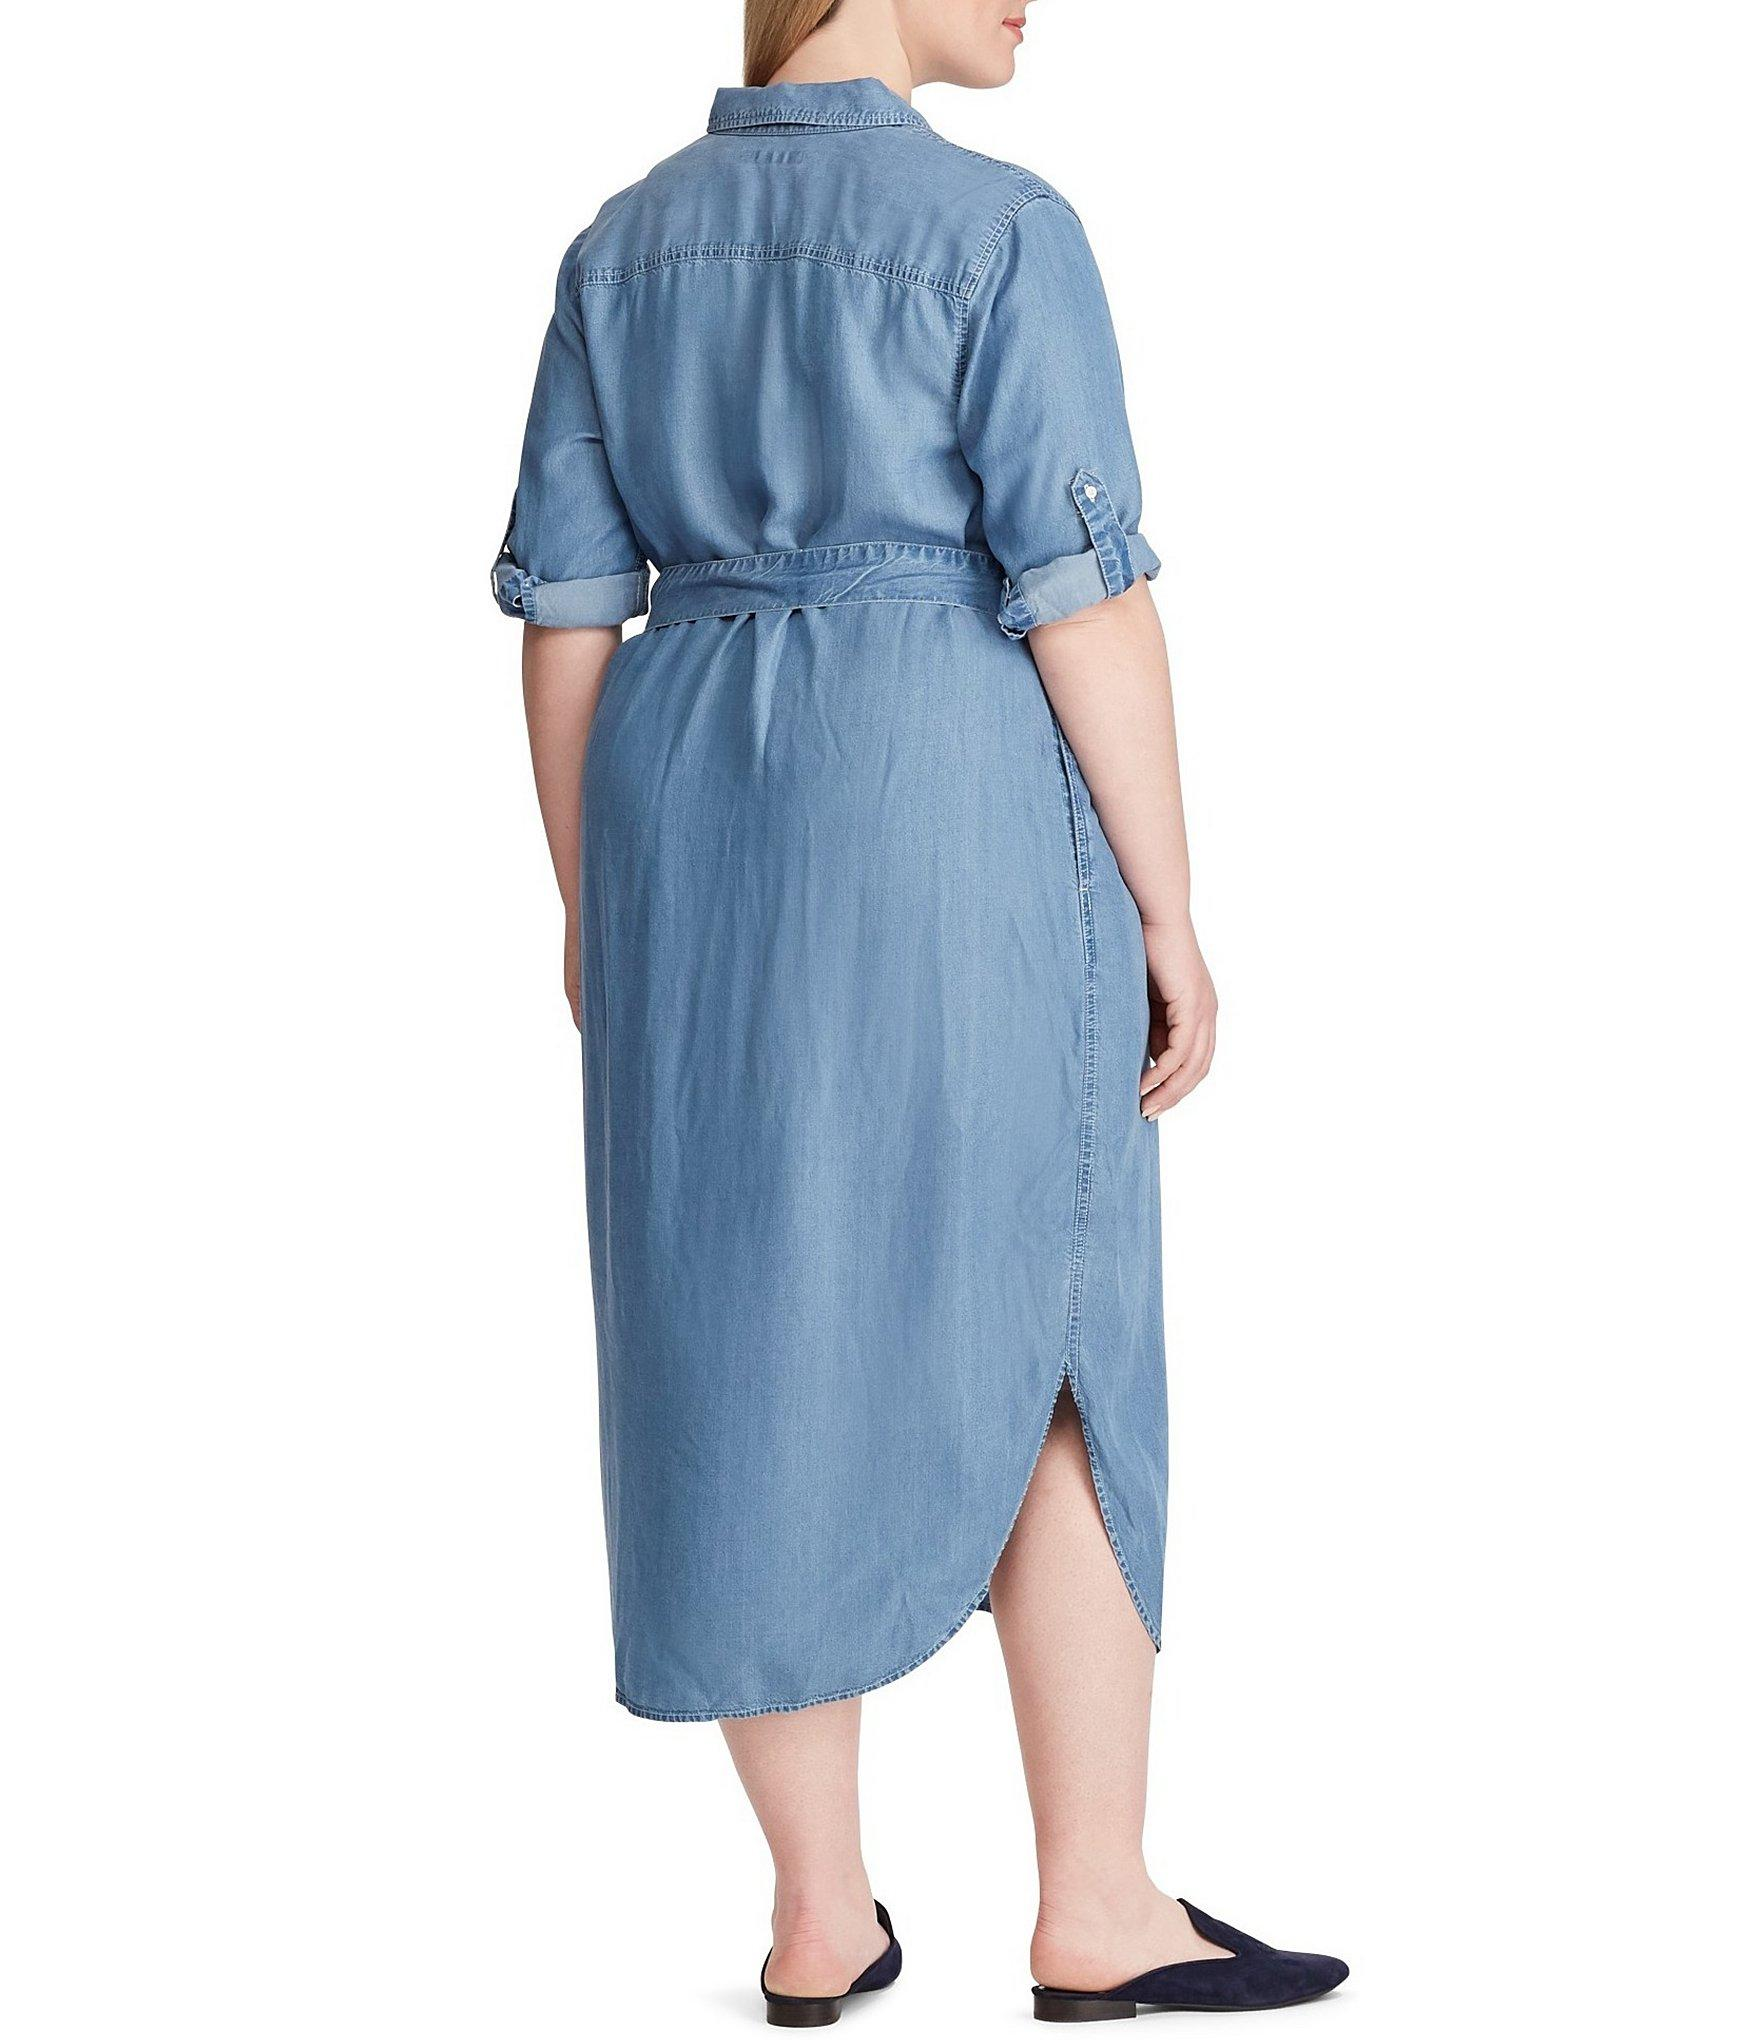 518b042f22f Lyst - Lauren by Ralph Lauren Plus Size Denim Shirt Dress in Blue